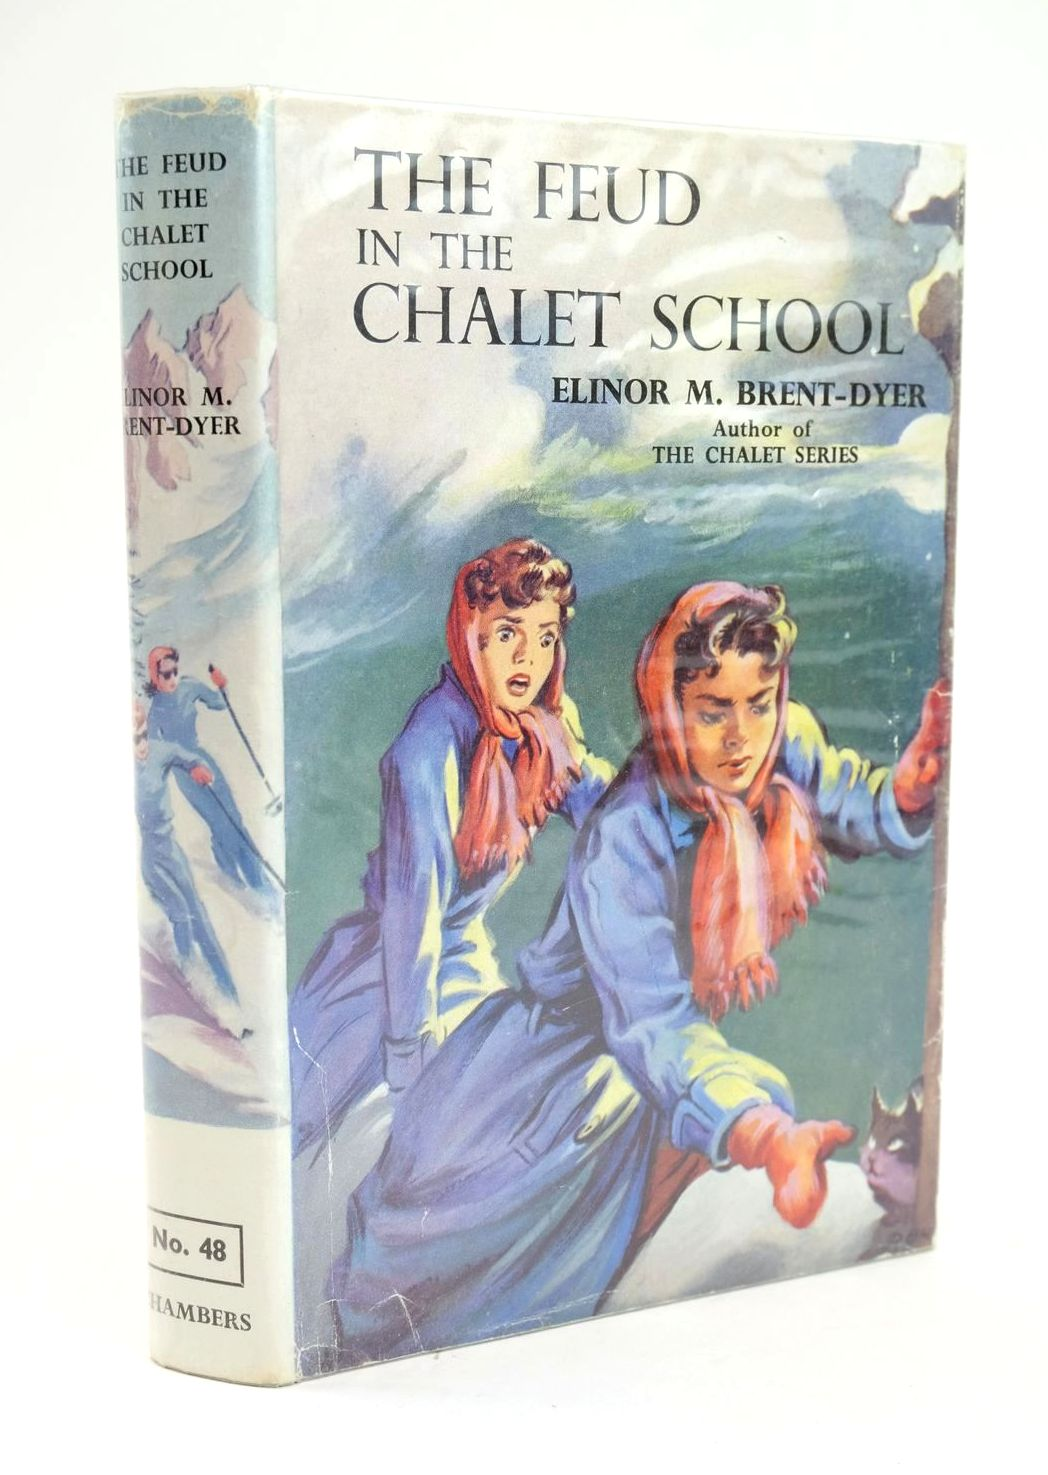 Photo of THE FEUD IN THE CHALET SCHOOL written by Brent-Dyer, Elinor M. illustrated by Brook, D. published by W. & R. Chambers Limited (STOCK CODE: 1319274)  for sale by Stella & Rose's Books